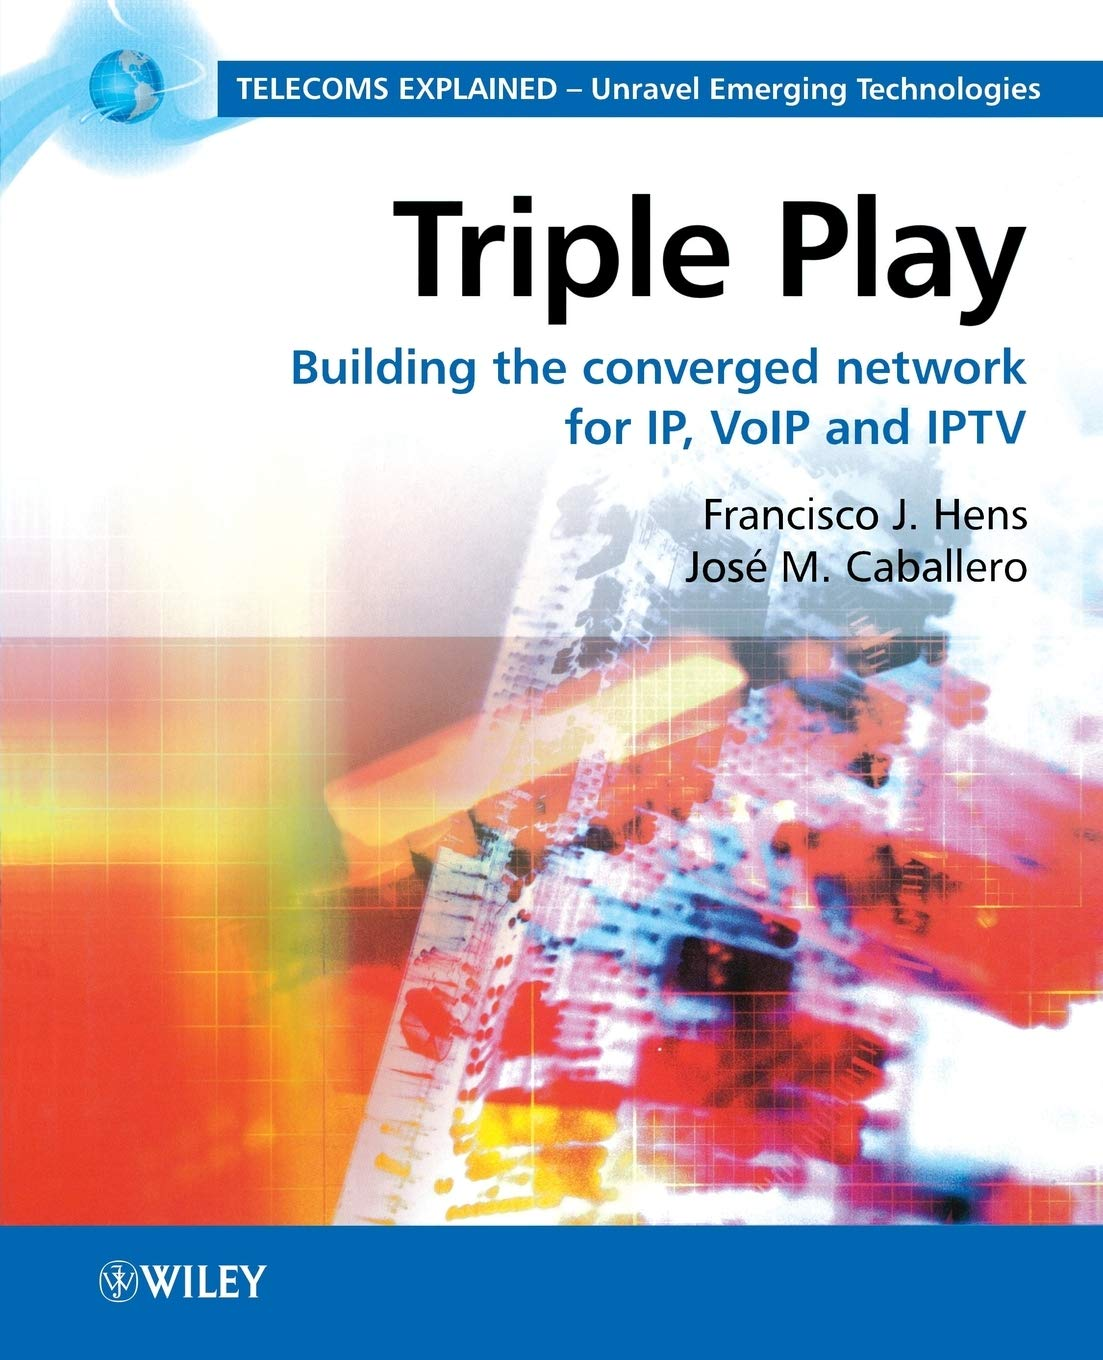 Triple Play: Building the Converged Network for IP, VoIP and IPTV Telecoms Explained: Amazon.es: Hens, Francisco J., Caballero, Jose M.: Libros en idiomas extranjeros